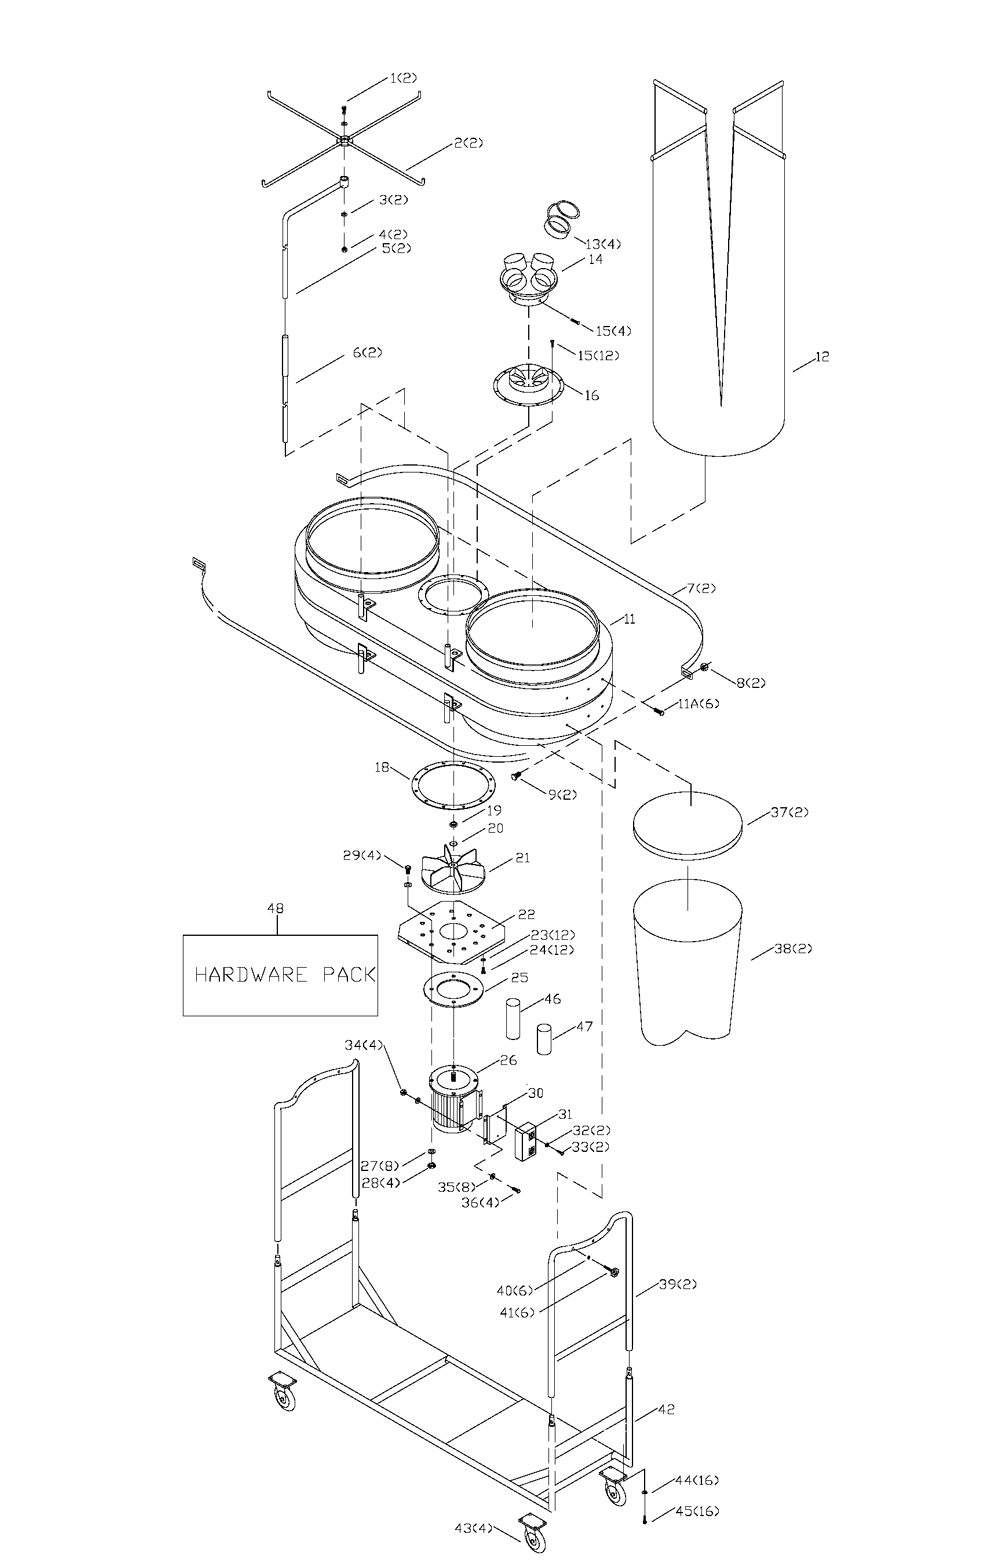 Diagram of a dust collector cyclone engine diagram at ww justdeskto allpapers